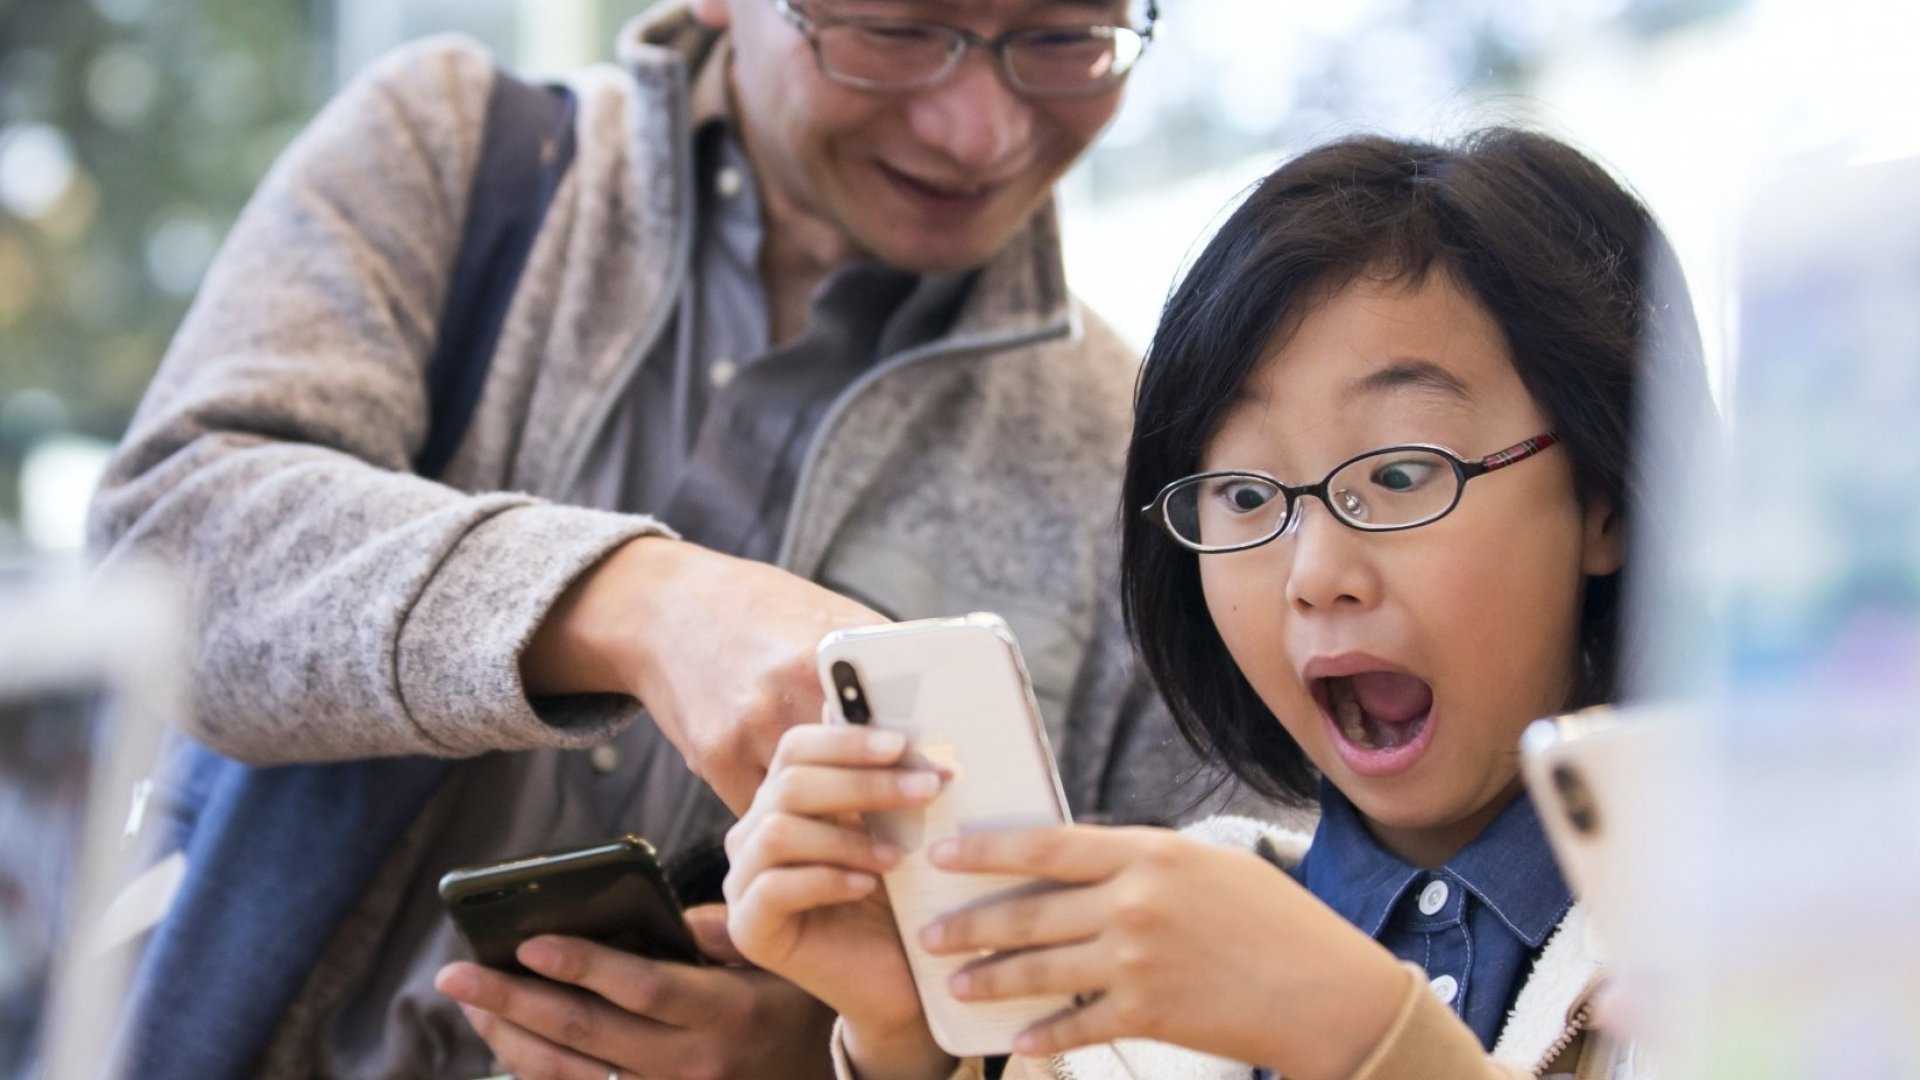 These Major Apple Investors Want to Know If iPhones Are Harmful to Children